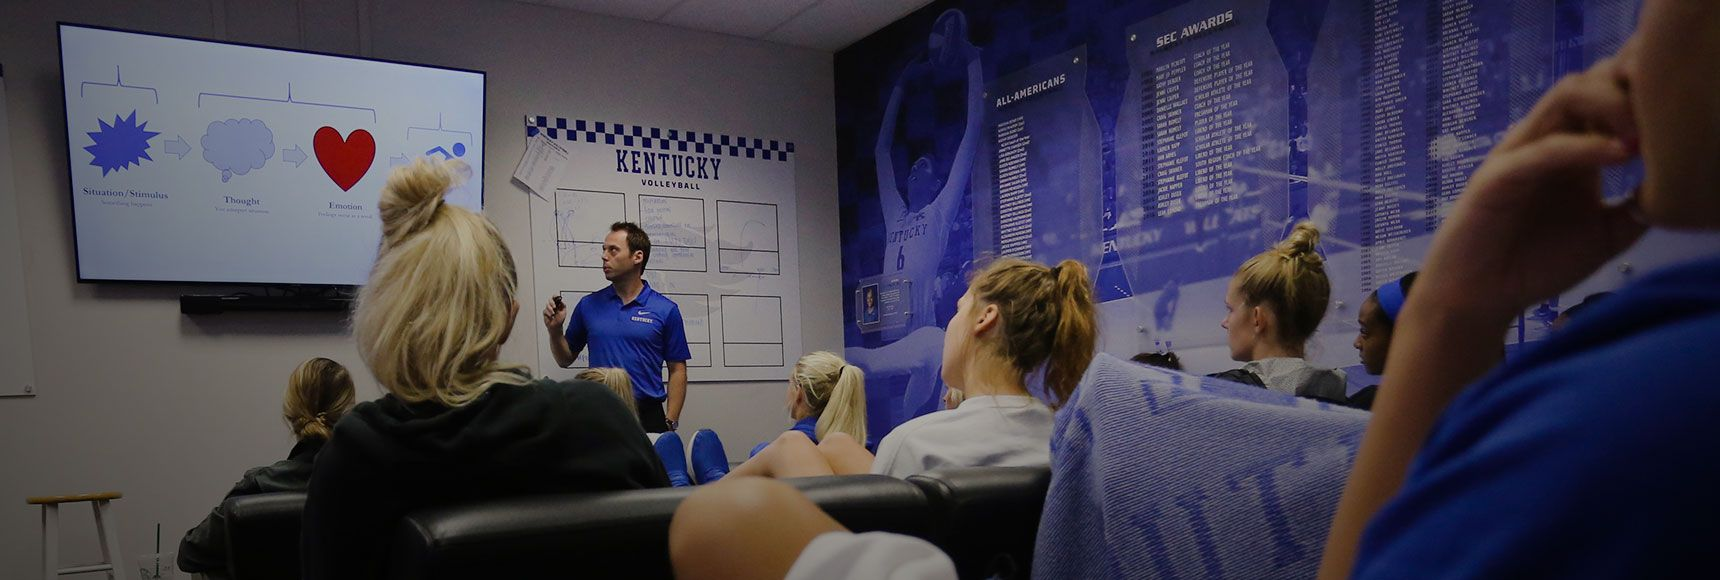 Marc Cormier instructing student athletes at university of kentucky